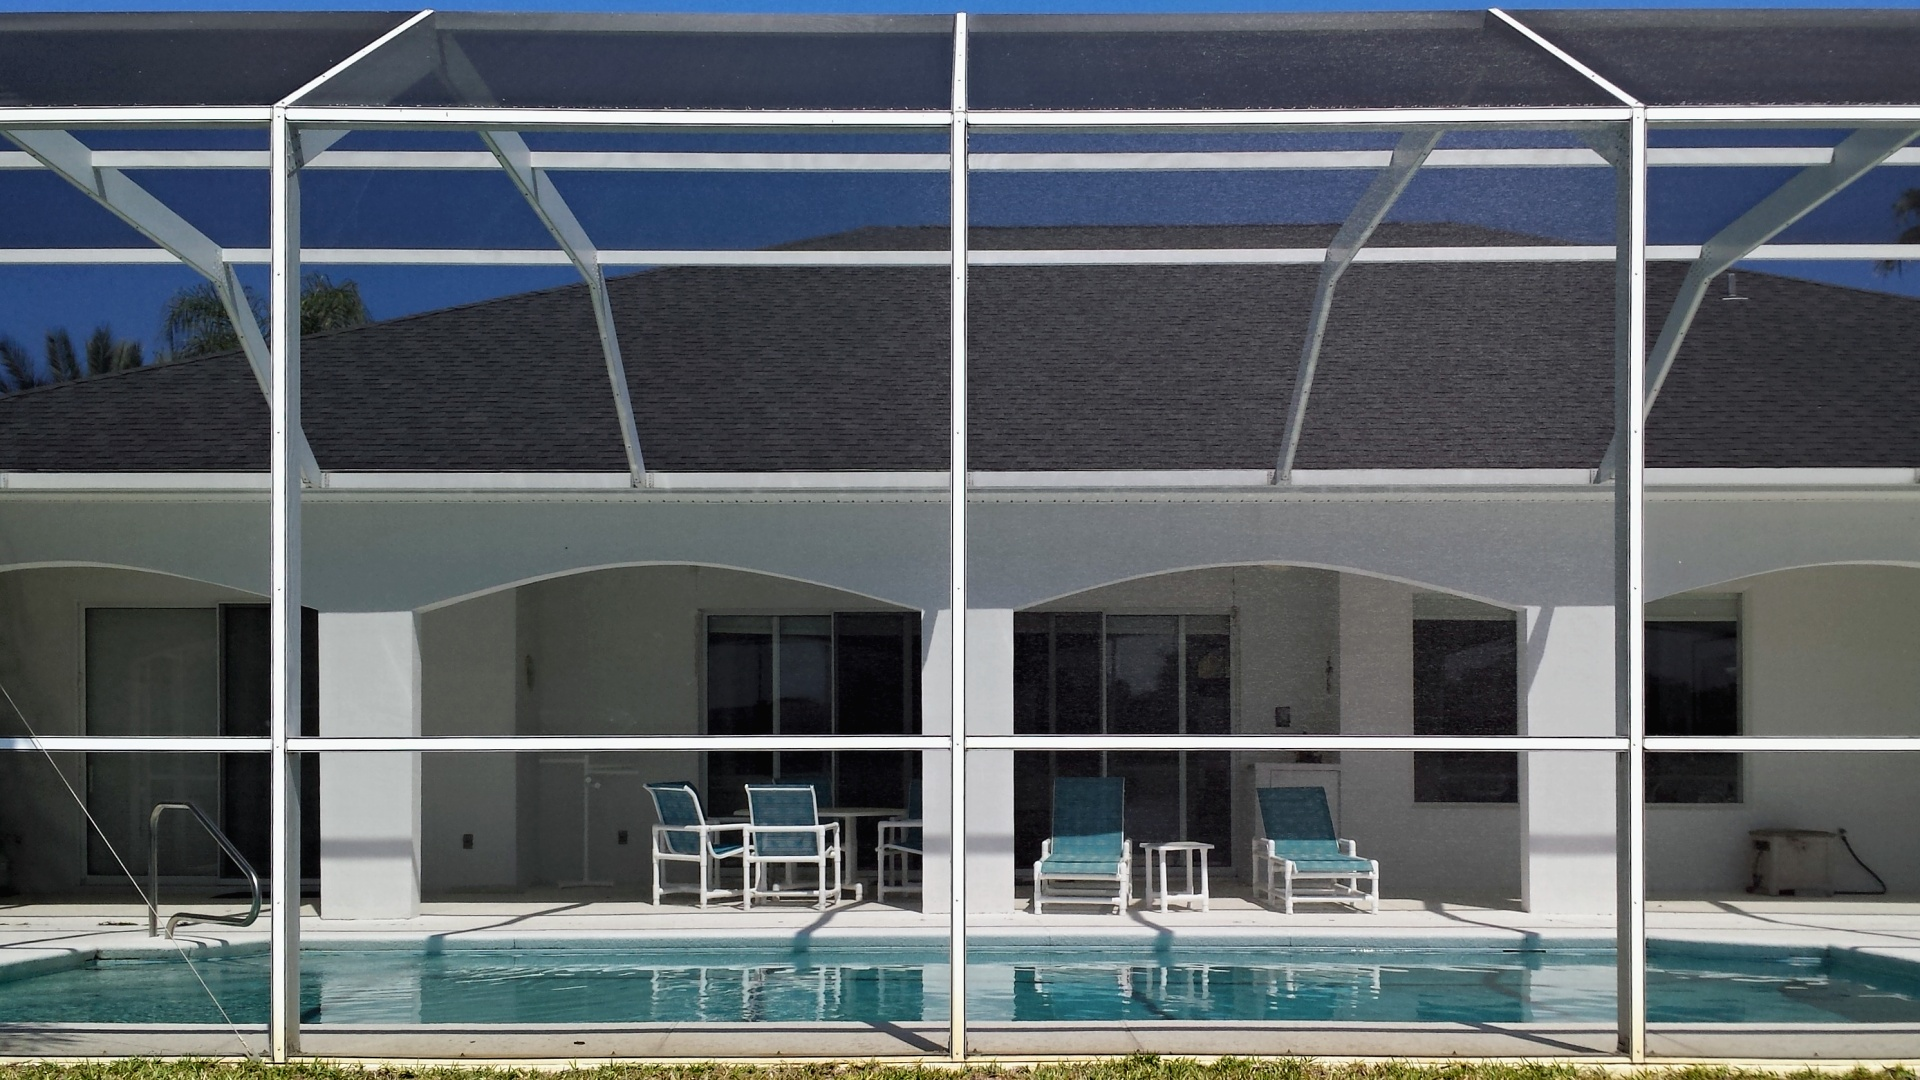 pool-screen-repair-ormond-beach-14-1080p.jpg